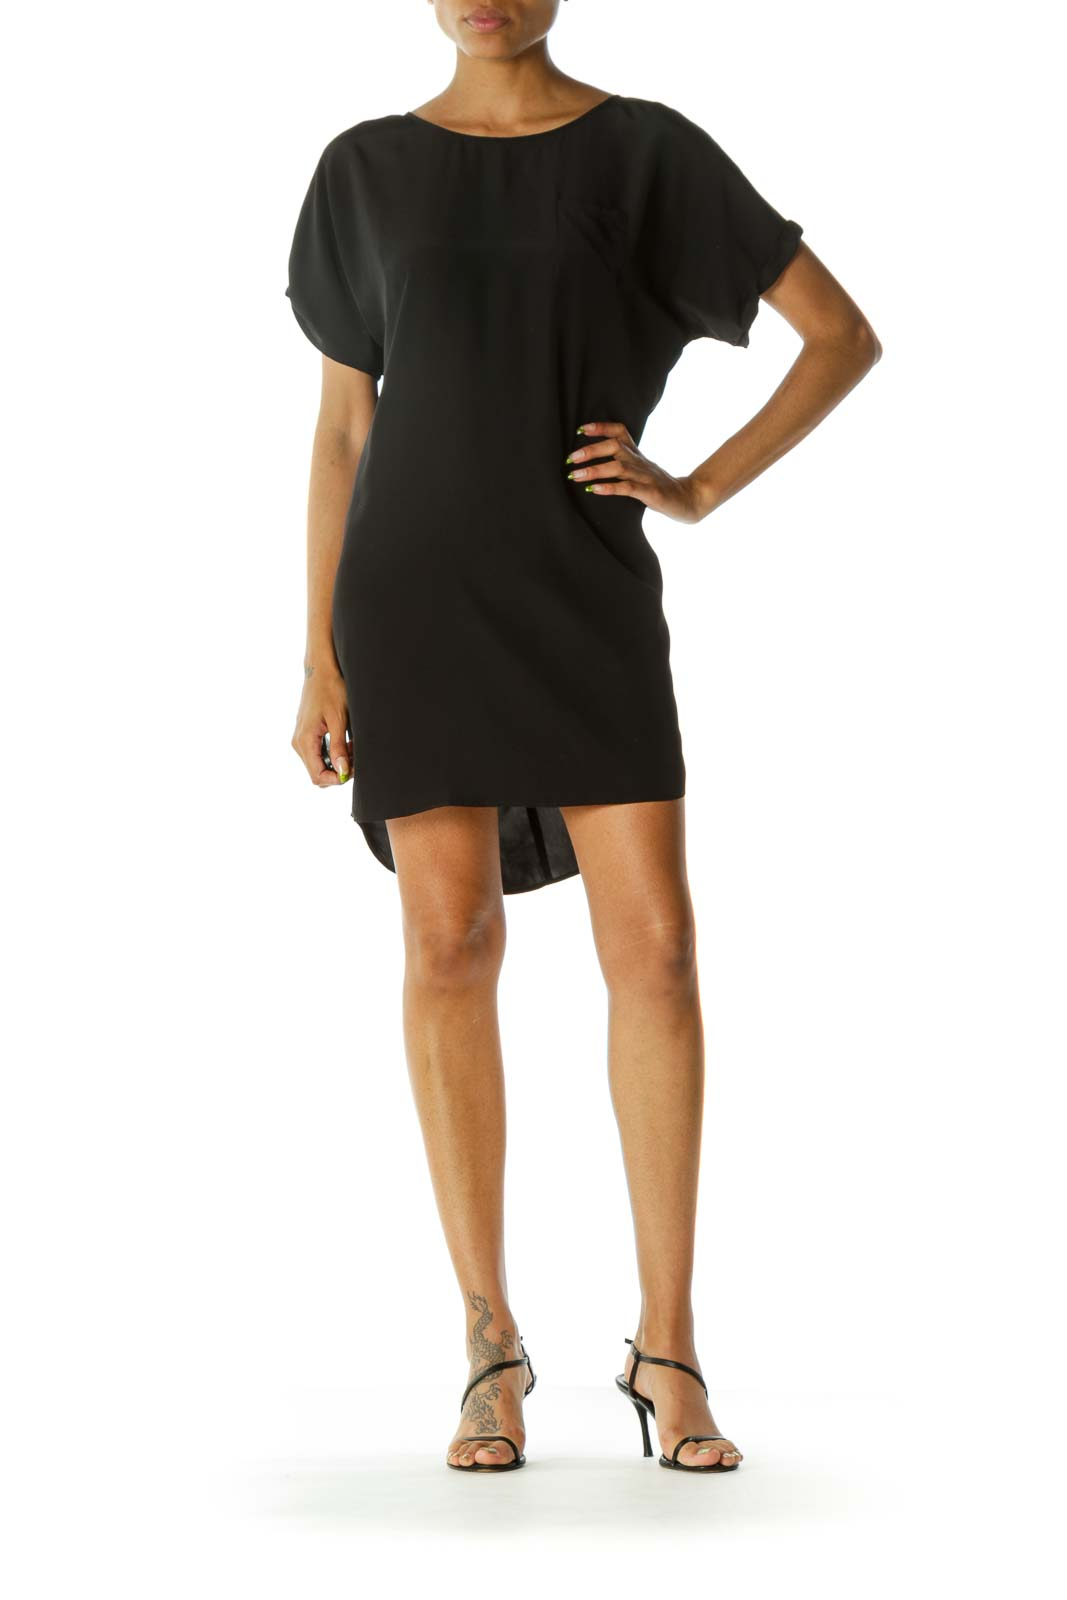 Black Round Neck Short Sleeve Pocket Day Dress